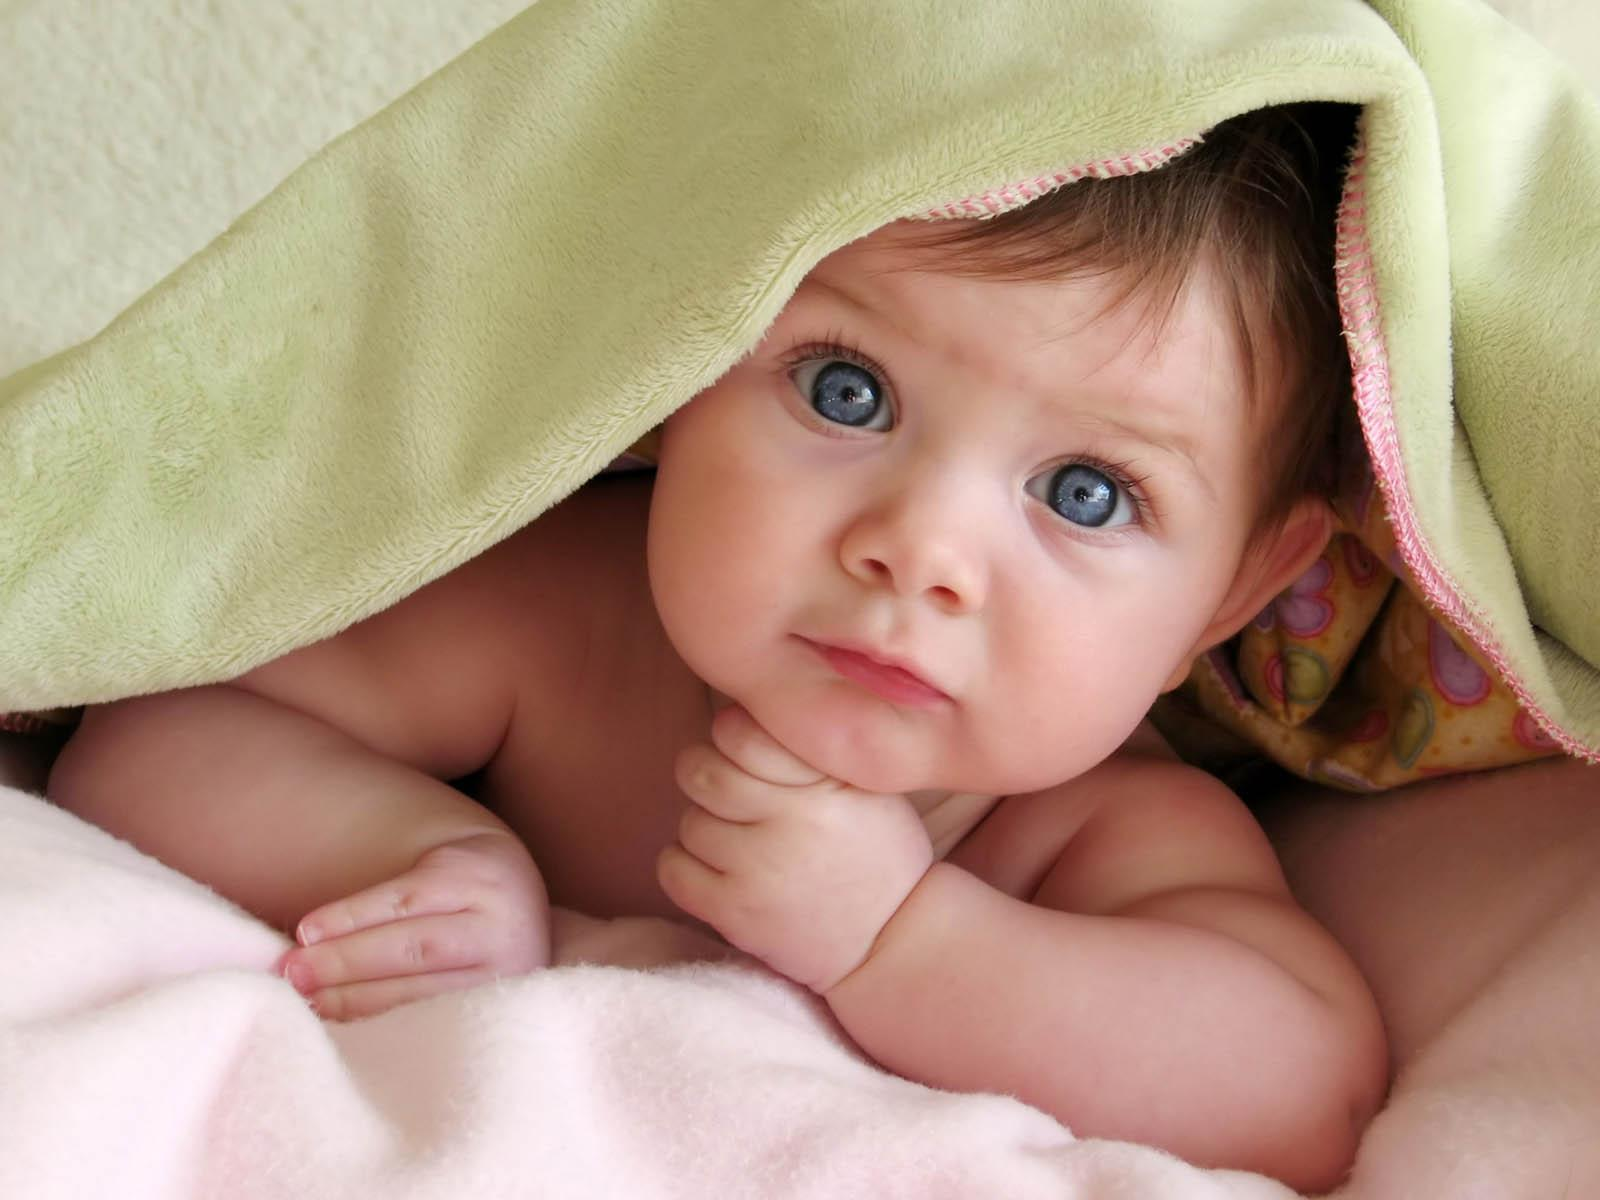 Wallpapers pictures of babies wallpaper cave cool babies wallpapers hd wallpapers voltagebd Images